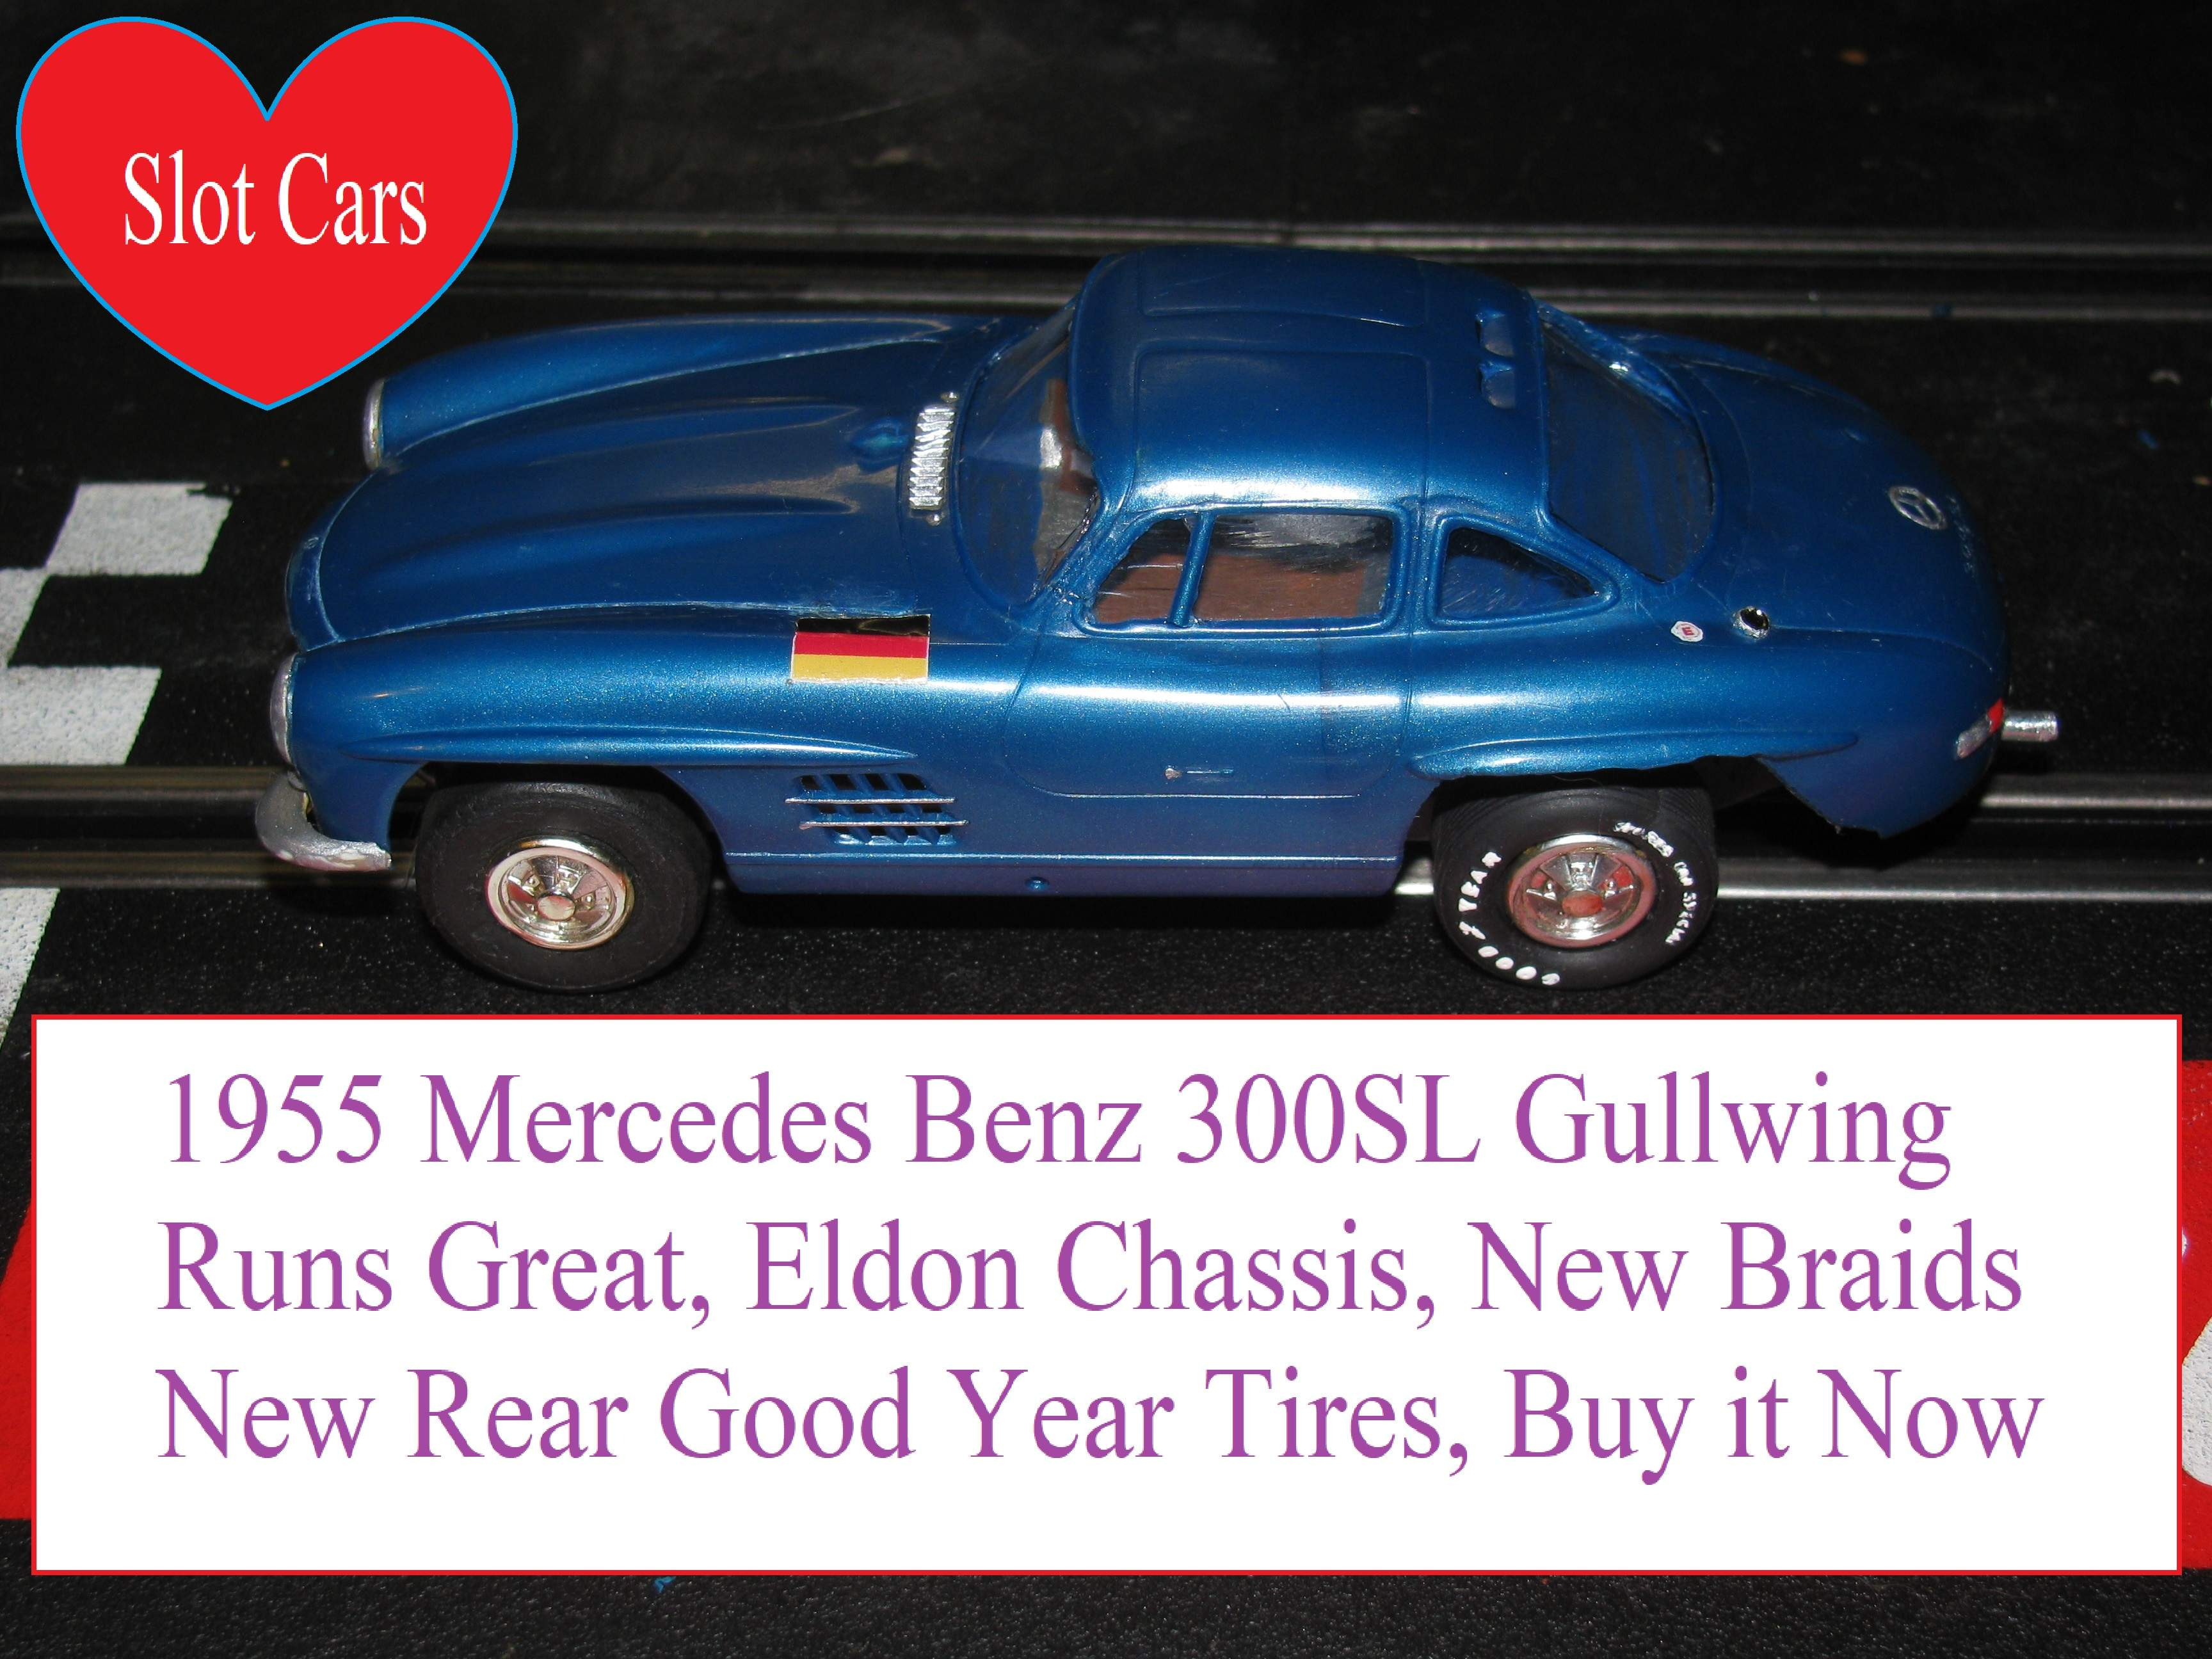 * SOLD * Vintage 1955 Mercedes Benz 300SL Gullwing in original blue, Runs Great